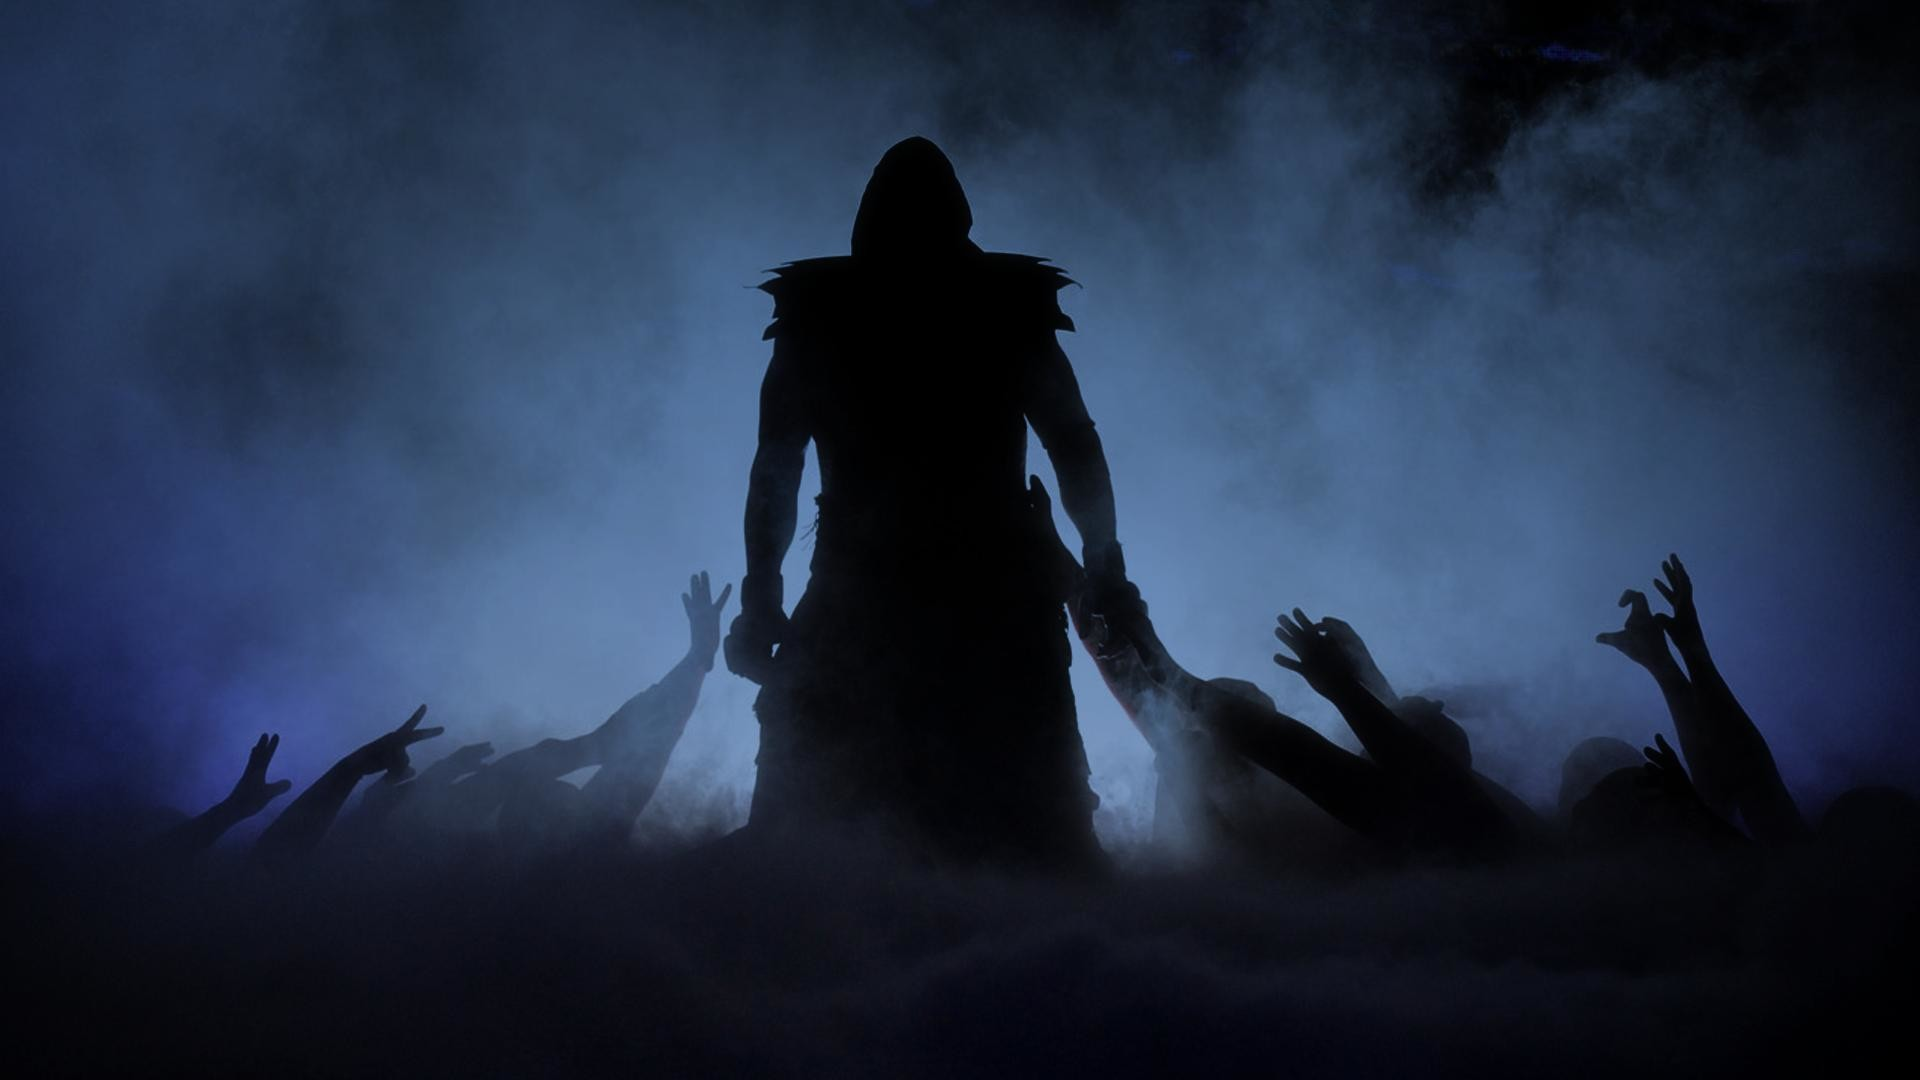 1920x1080 Who Will Undertaker Face at WrestleMania 30?